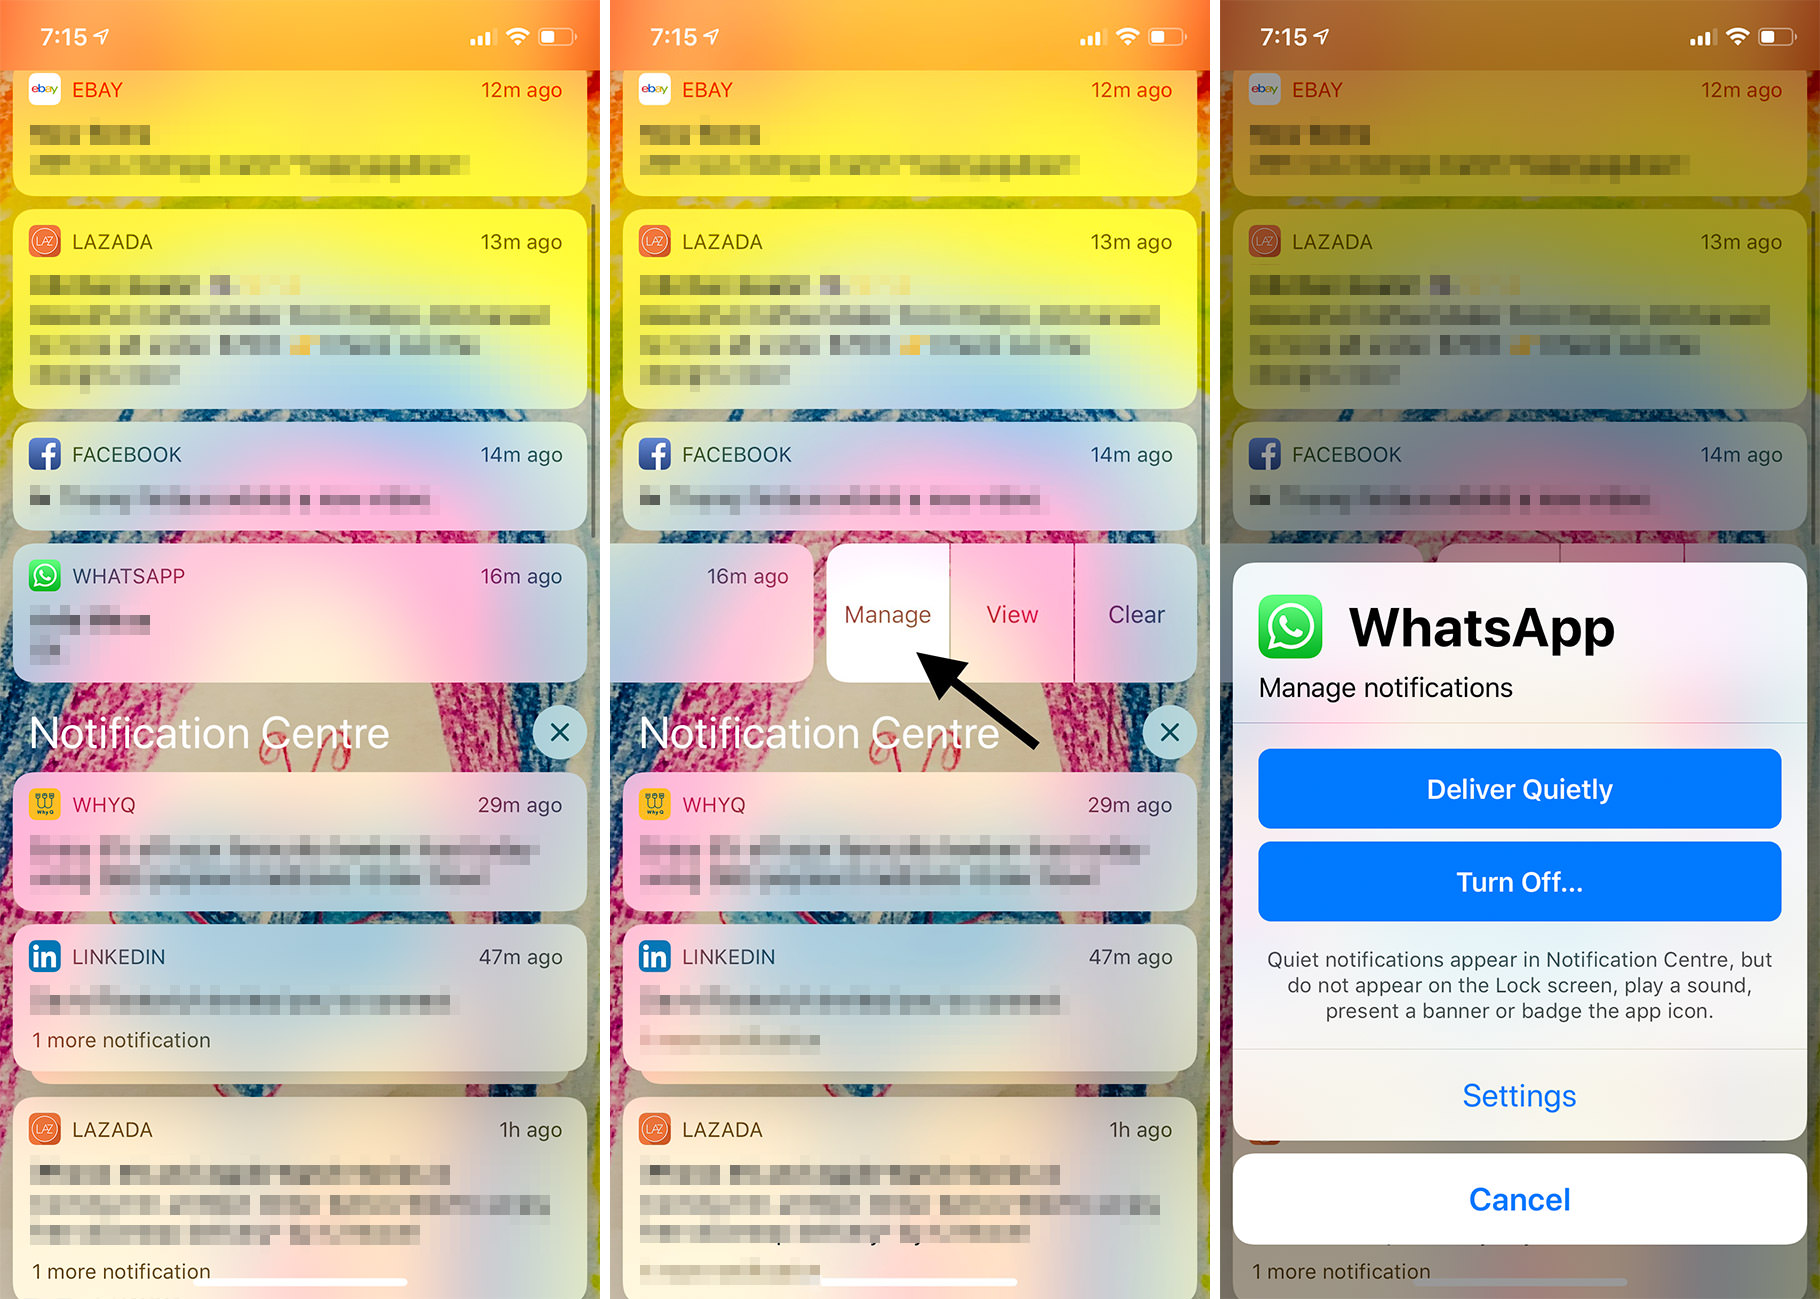 iOS 12: What's New with Notifications